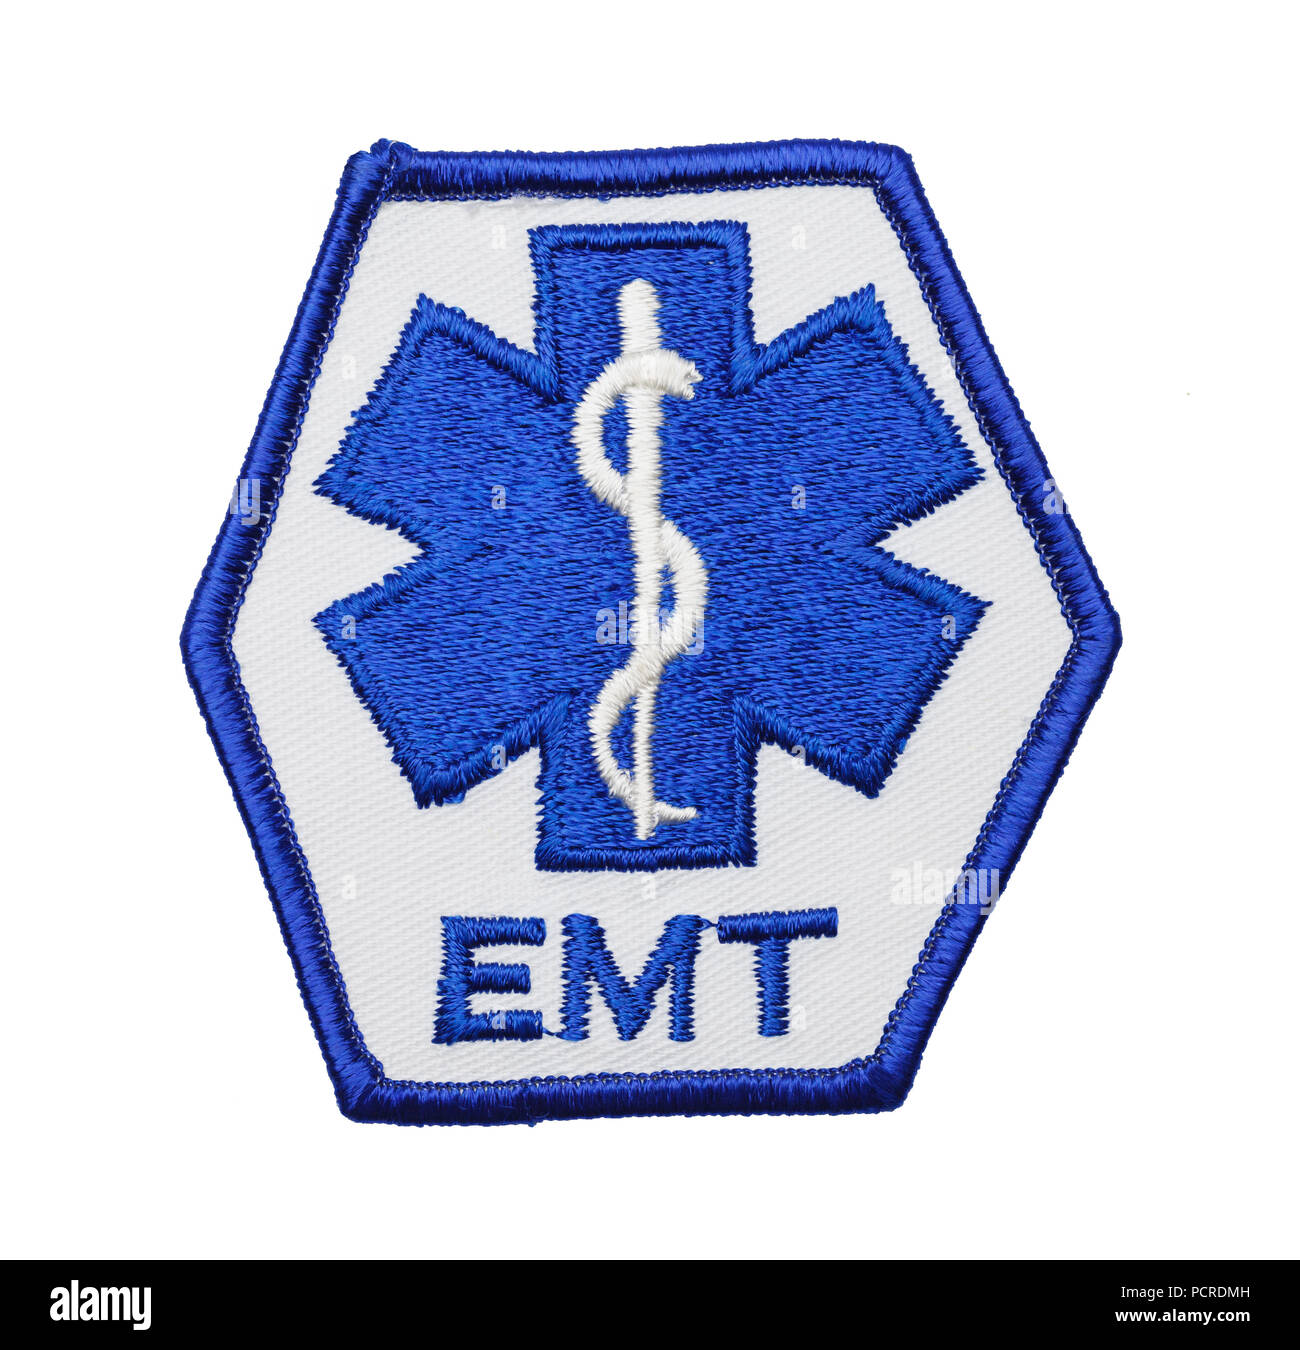 Medical EMT Uniform Patch Isolated on a White Background. - Stock Image